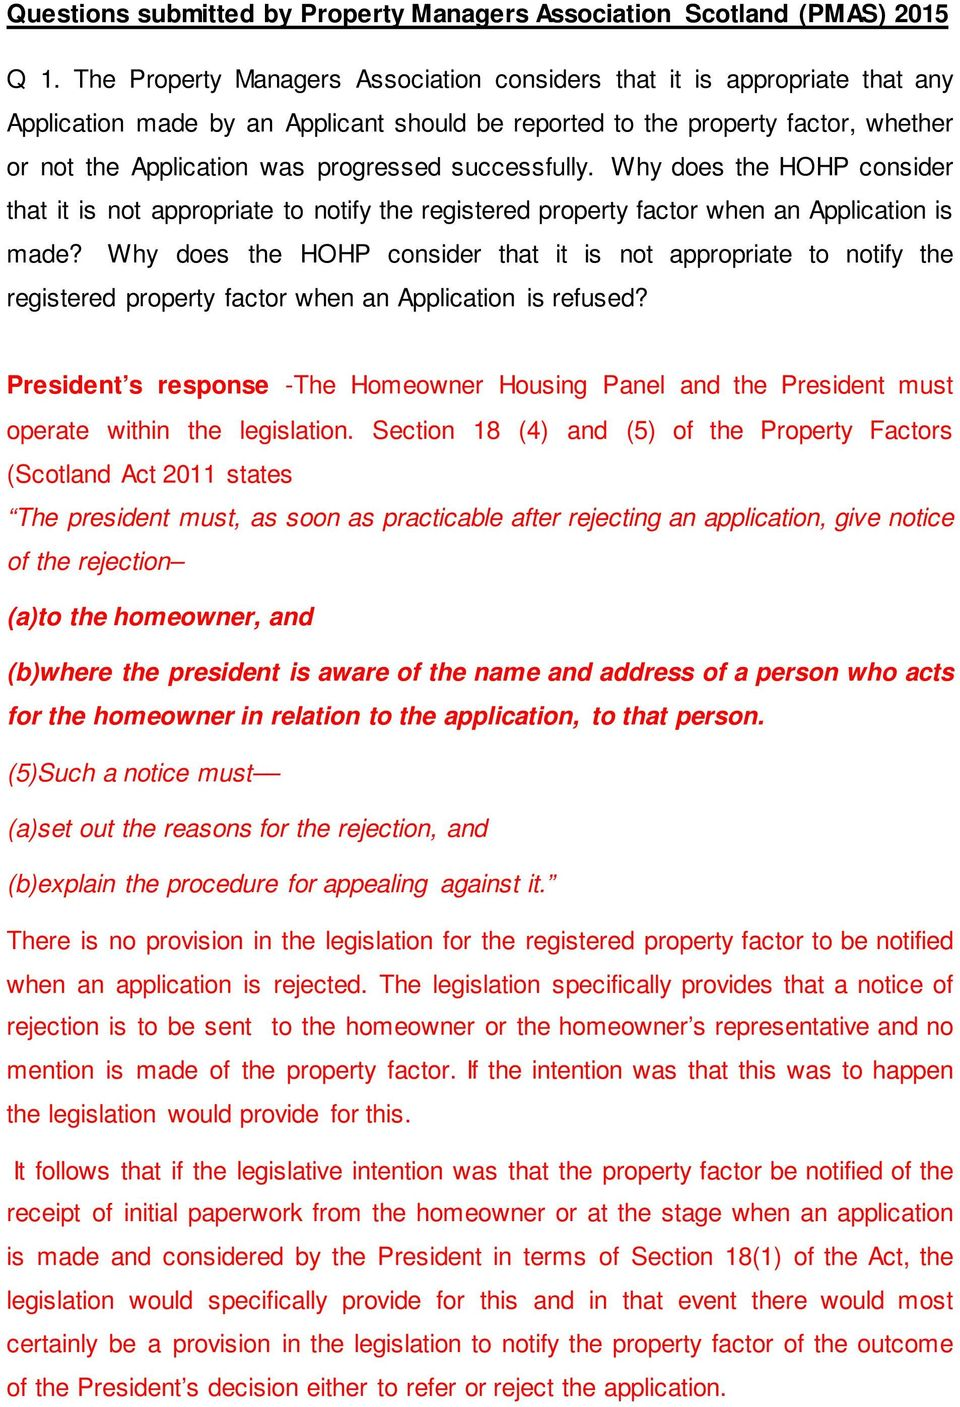 successfully. Why does the HOHP consider that it is not appropriate to notify the registered property factor when an Application is made?